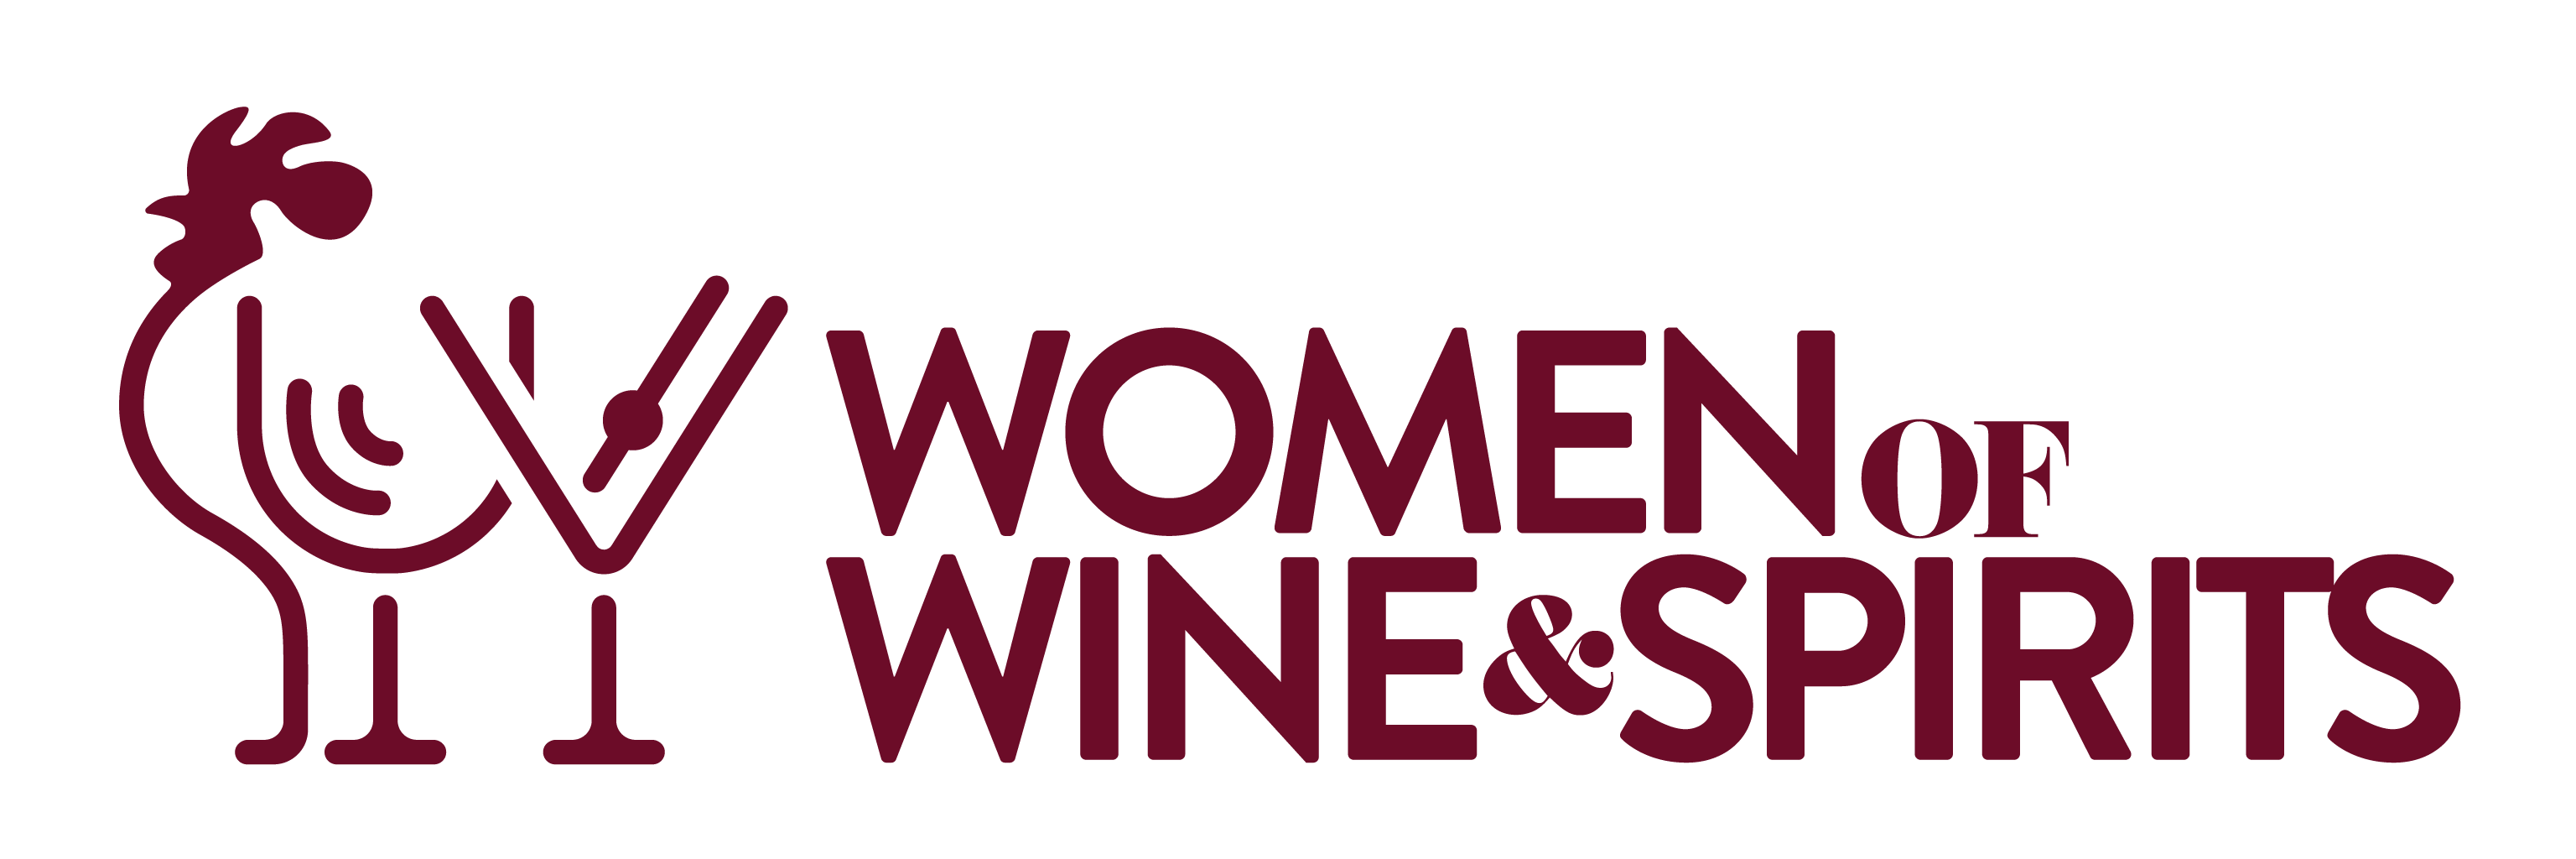 Women of Wine & Spirits (WOWS)